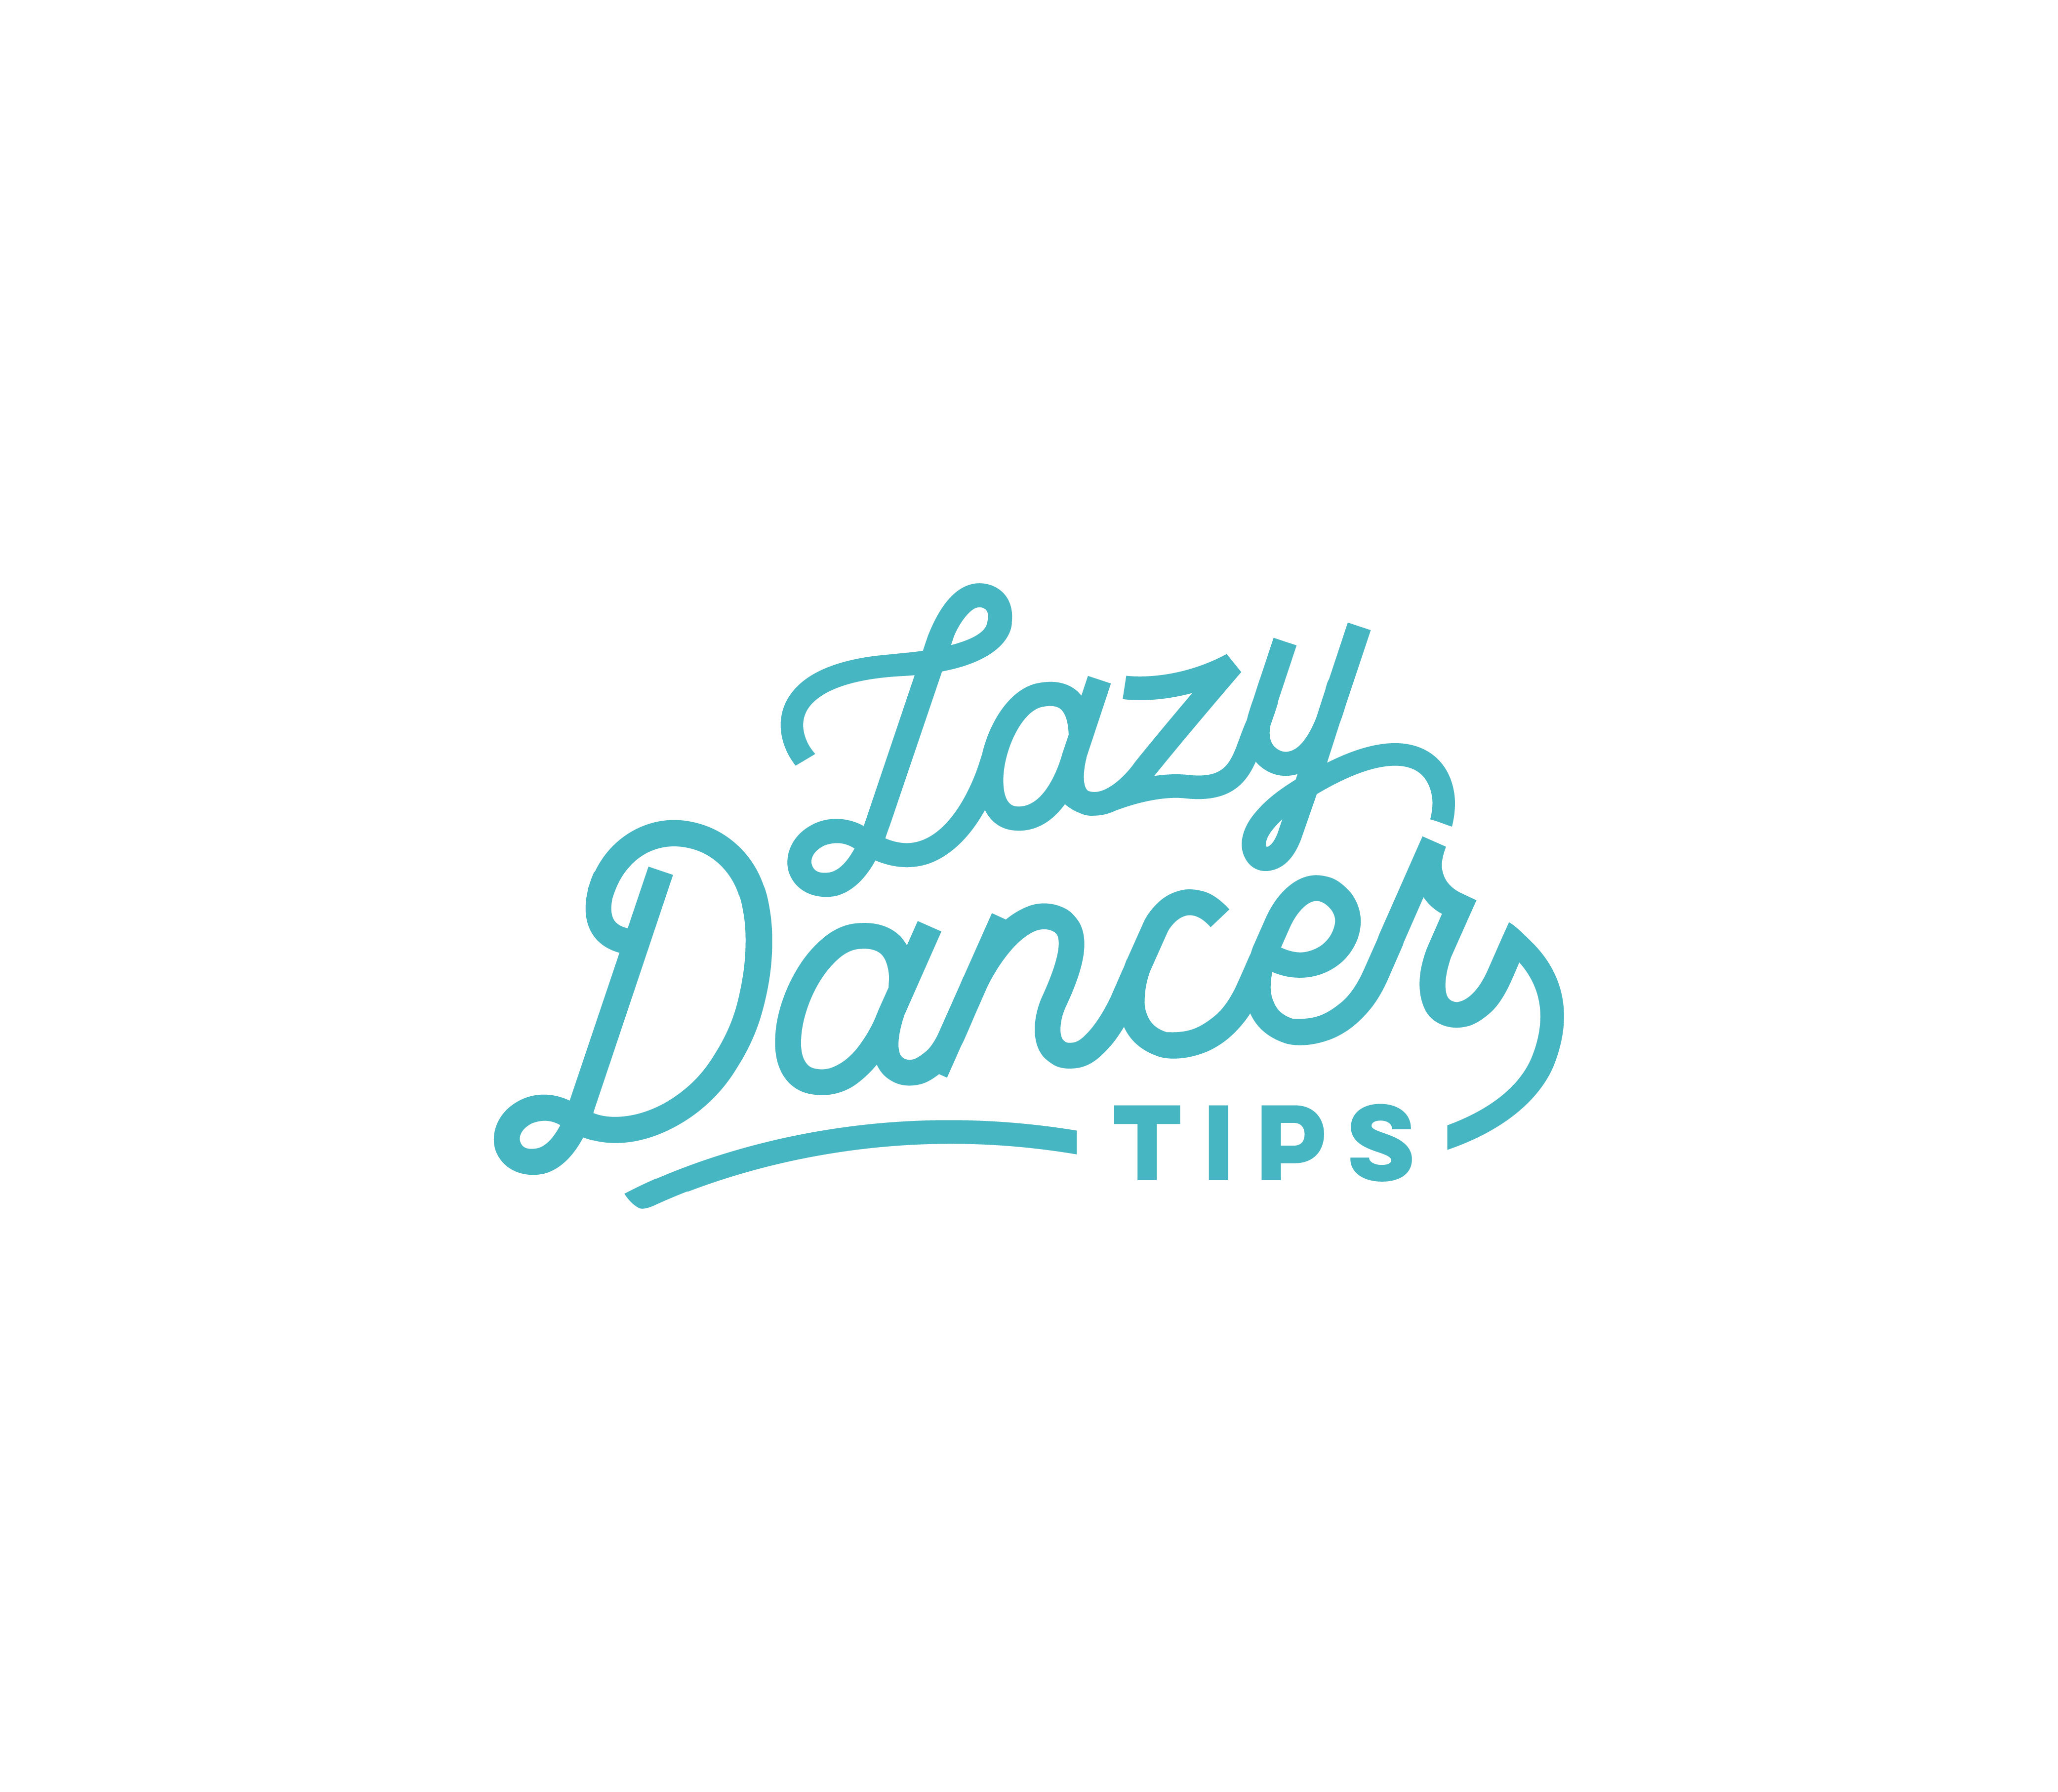 Lazy Dancer Tips   Ballet - Fitness - Fun. A logo the represents passion for dance and happiness